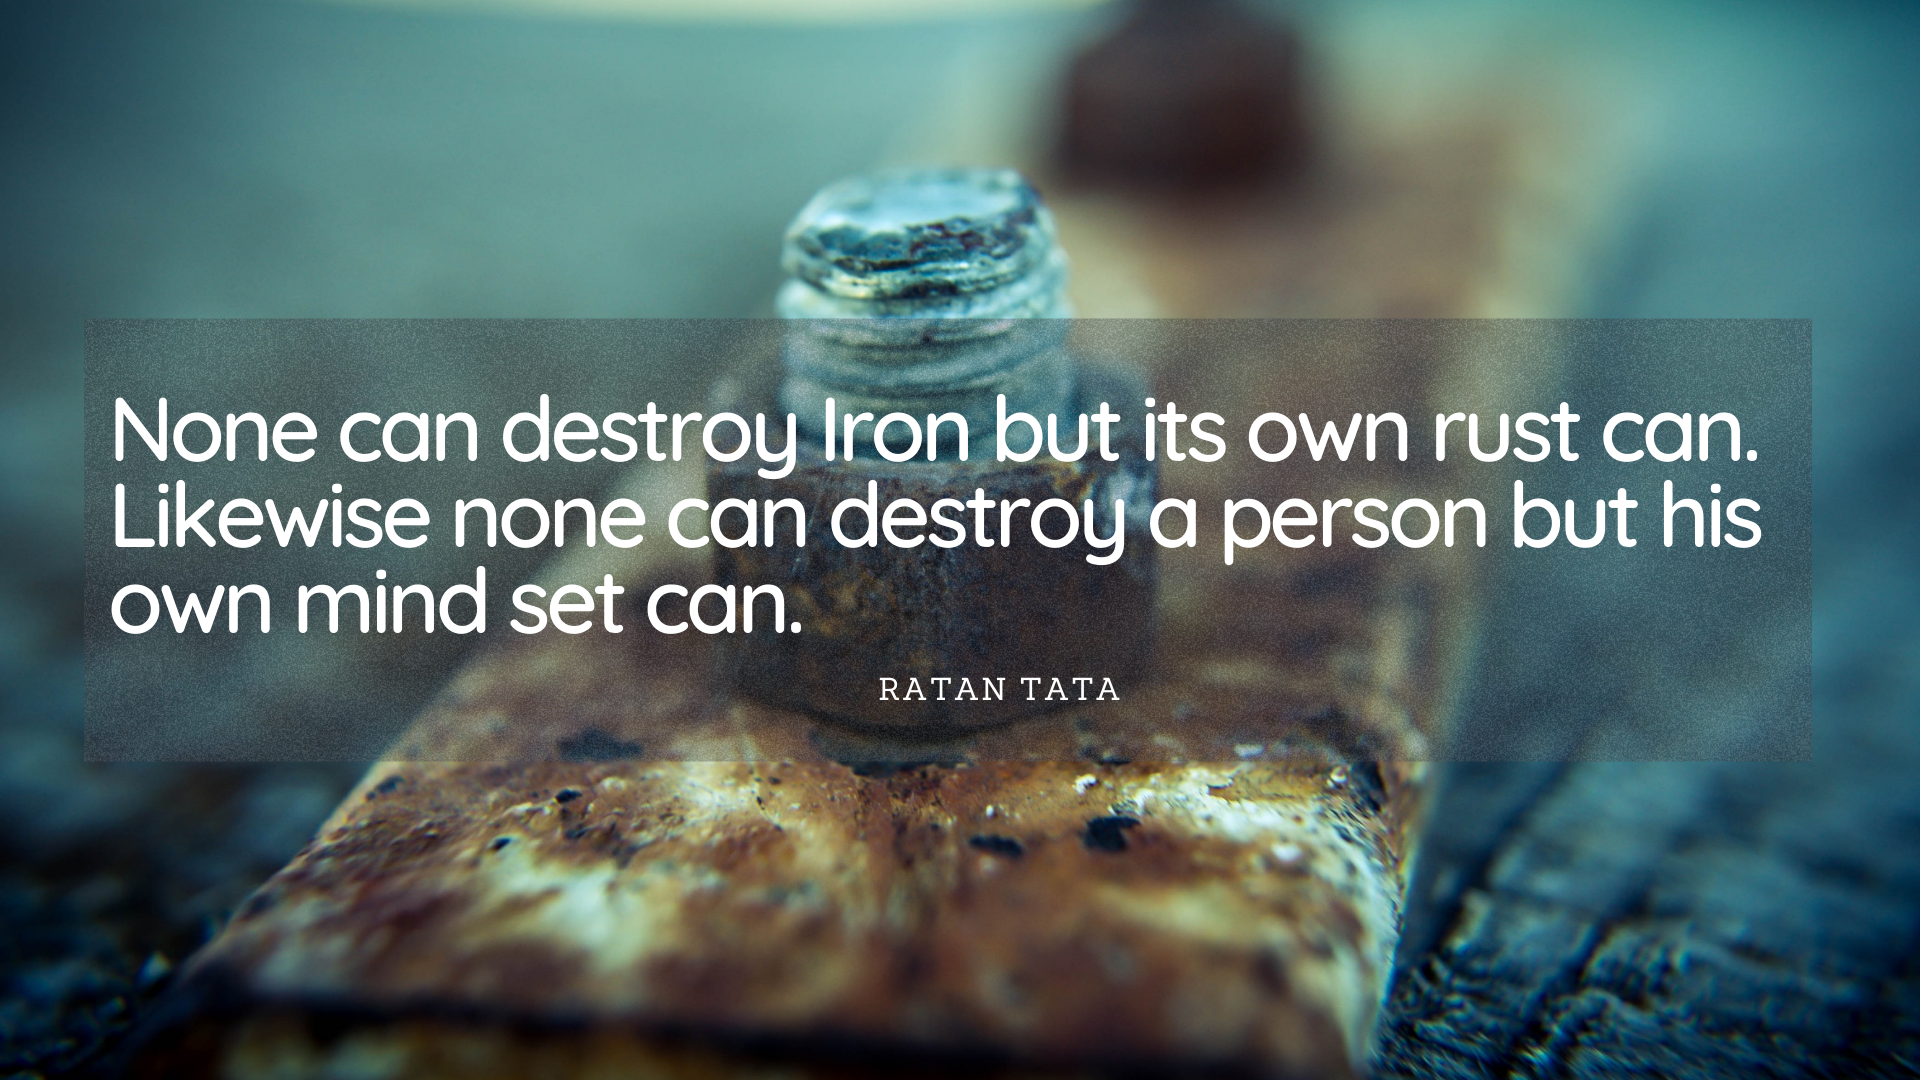 None can destroy Iron but its own rust can. Likewise none can destroy a person but his own mind set can. – Ratan Tata[1920×1080]